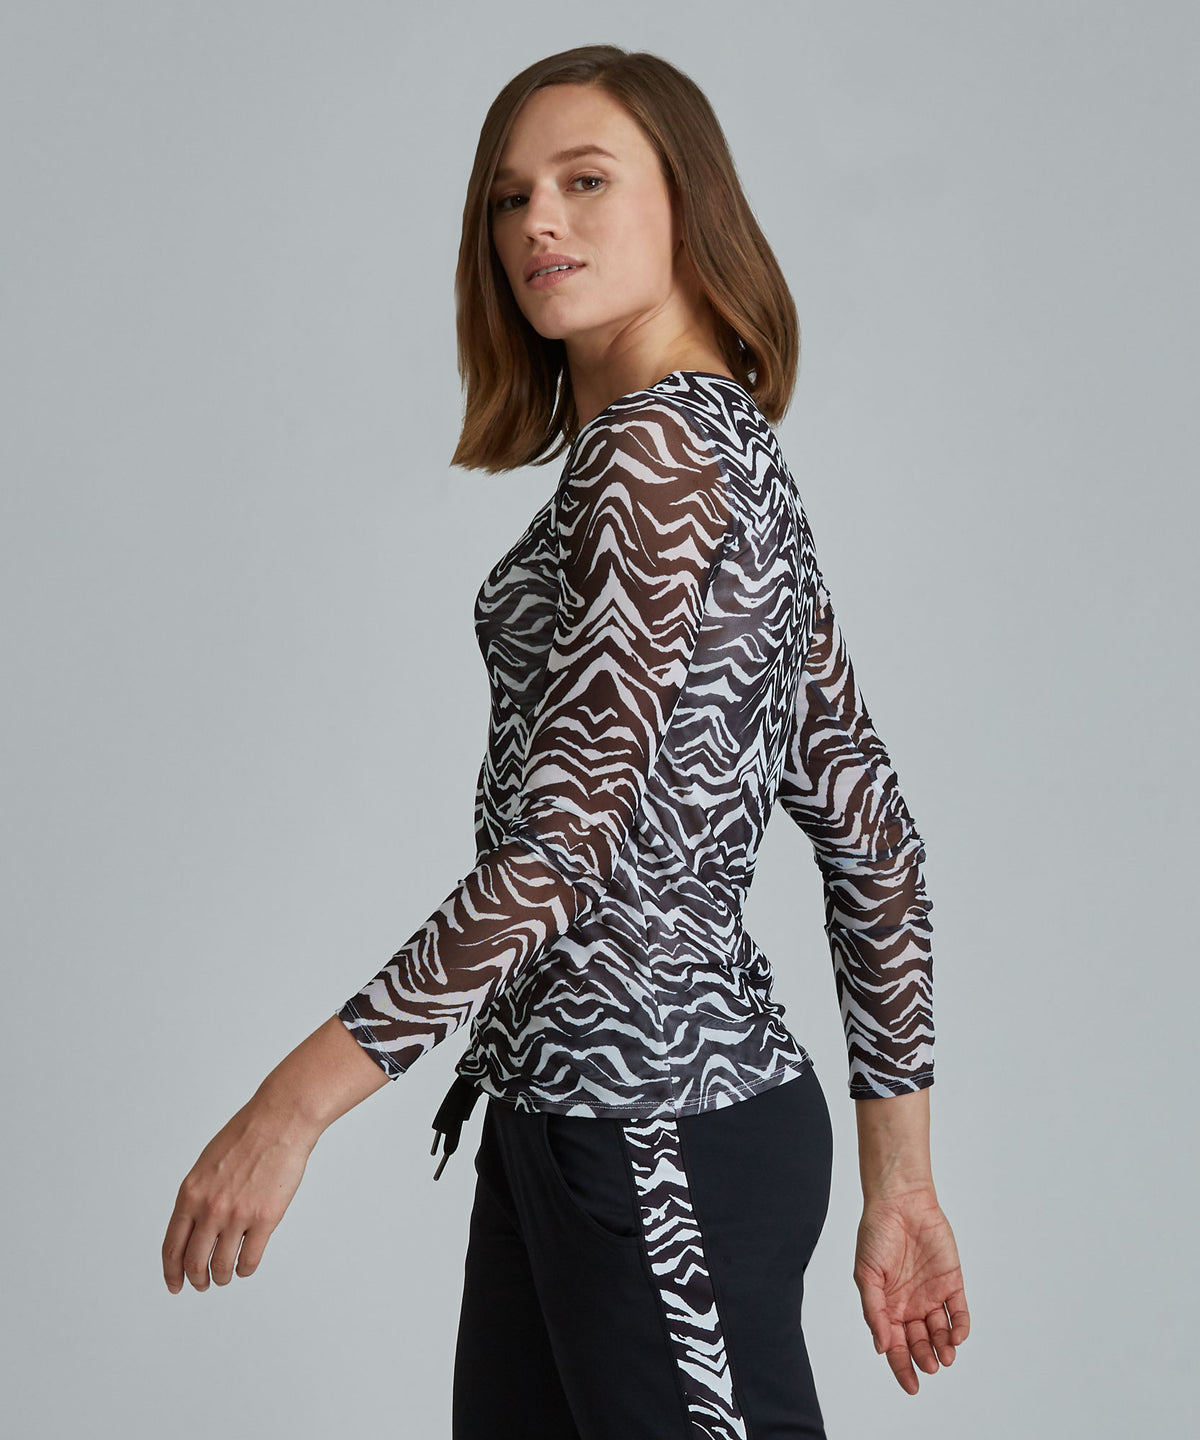 Emma Mesh Long Sleeve Tee - Zebra Zebra Emma Mesh Long Sleeve Top - Women's Activewear Long Sleeve Top by PRISMSPORT